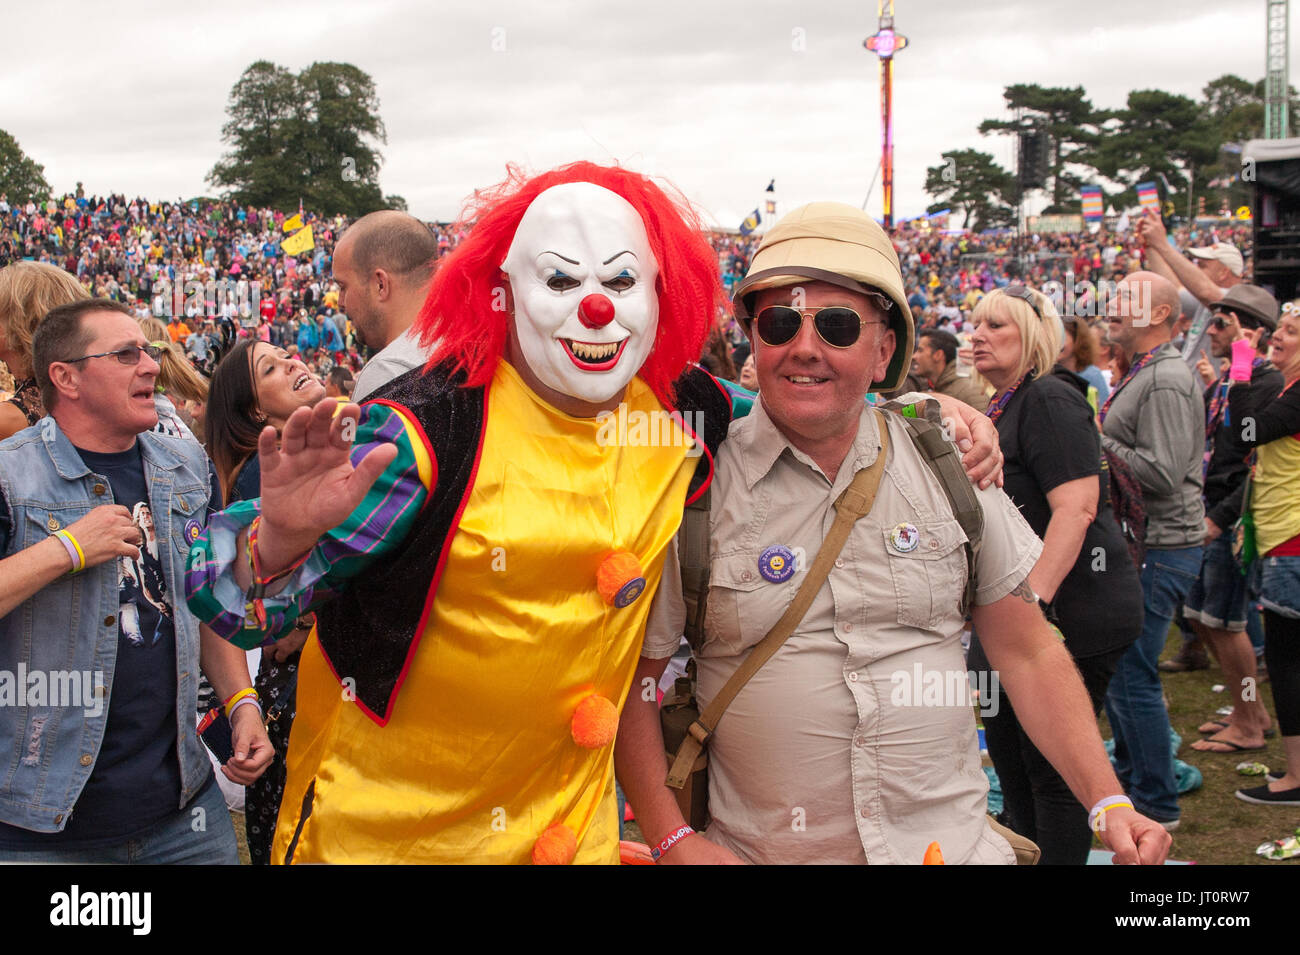 Festival goers dressed in Pennywise The Clown and Safari Suit fancy dress at Rewind North Festival, Capesthorne Hall, Cheshire UK. - Stock Image